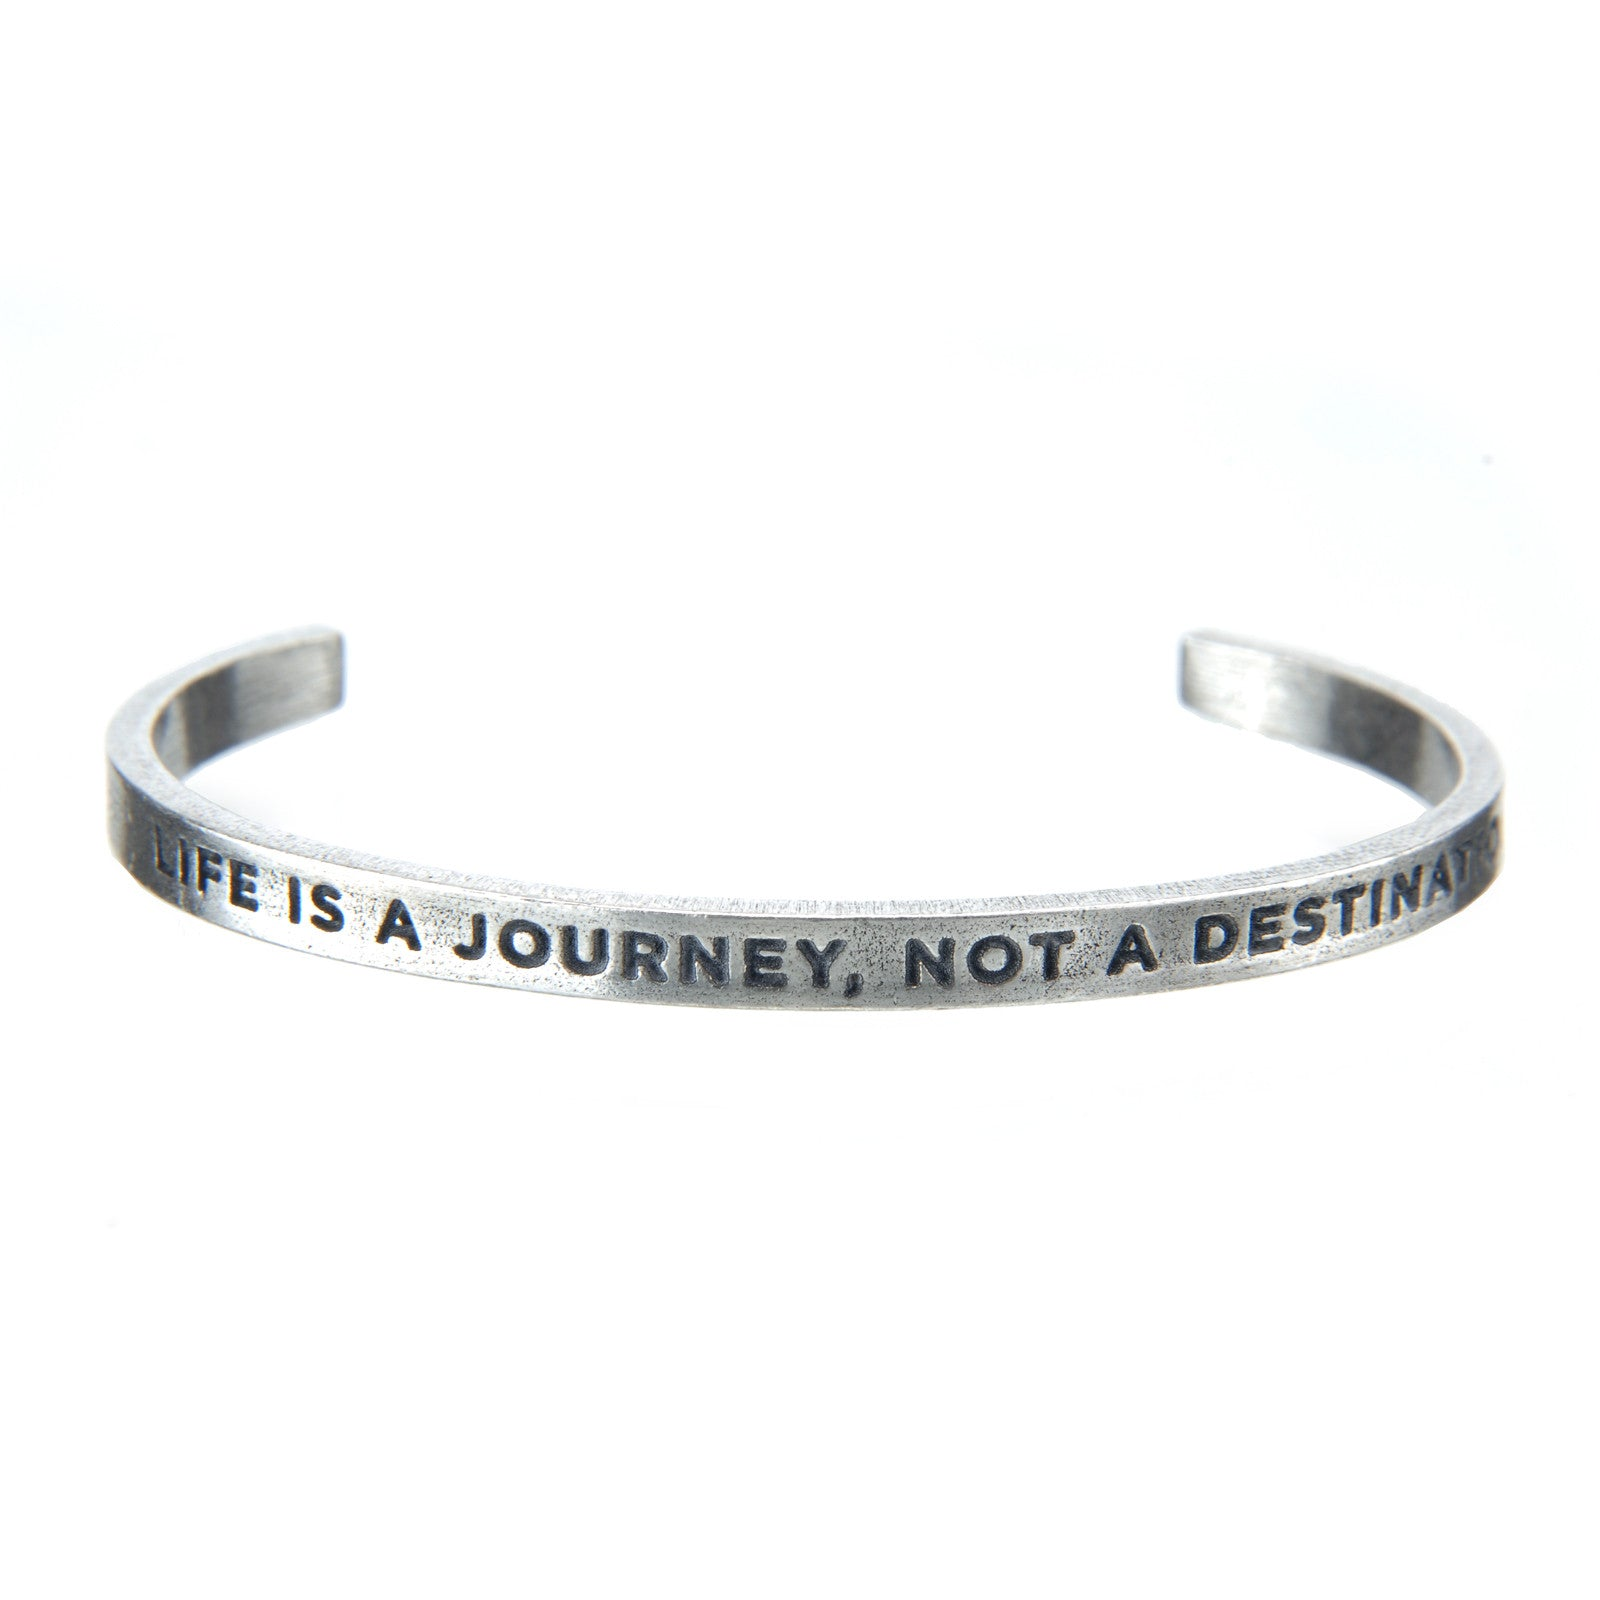 Life Is A Journey Quotable Cuff Bracelet - Whitney Howard Designs